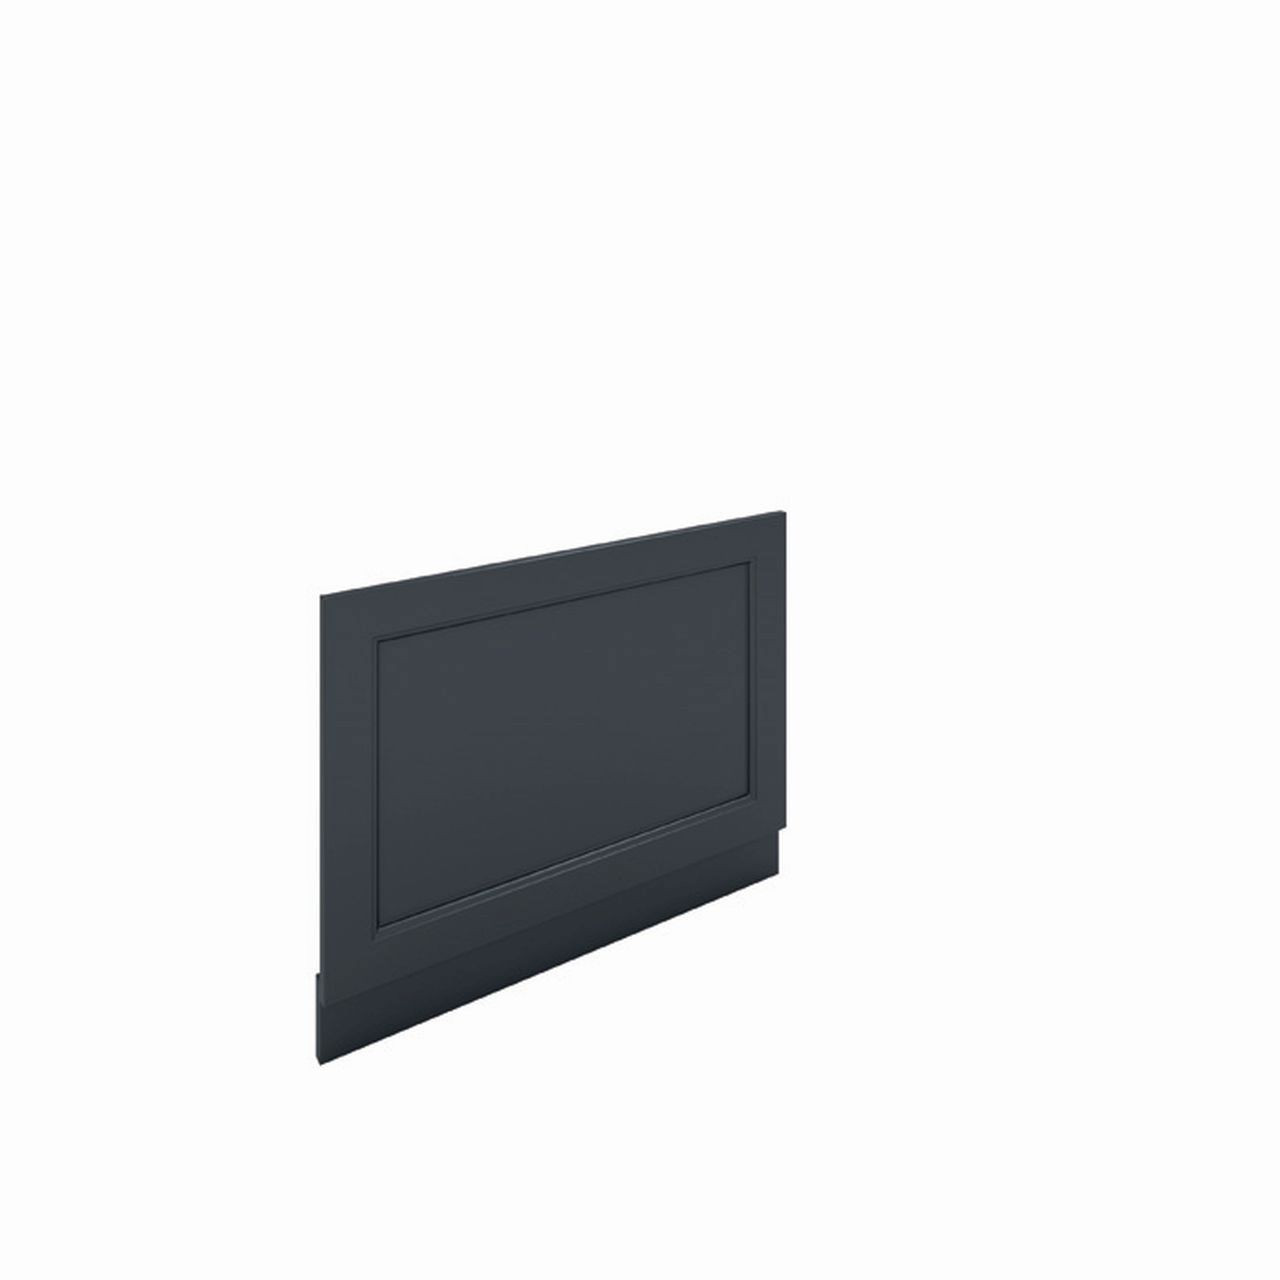 RAK Washington Black 700mm End Bath Panel - RAKWEP70504